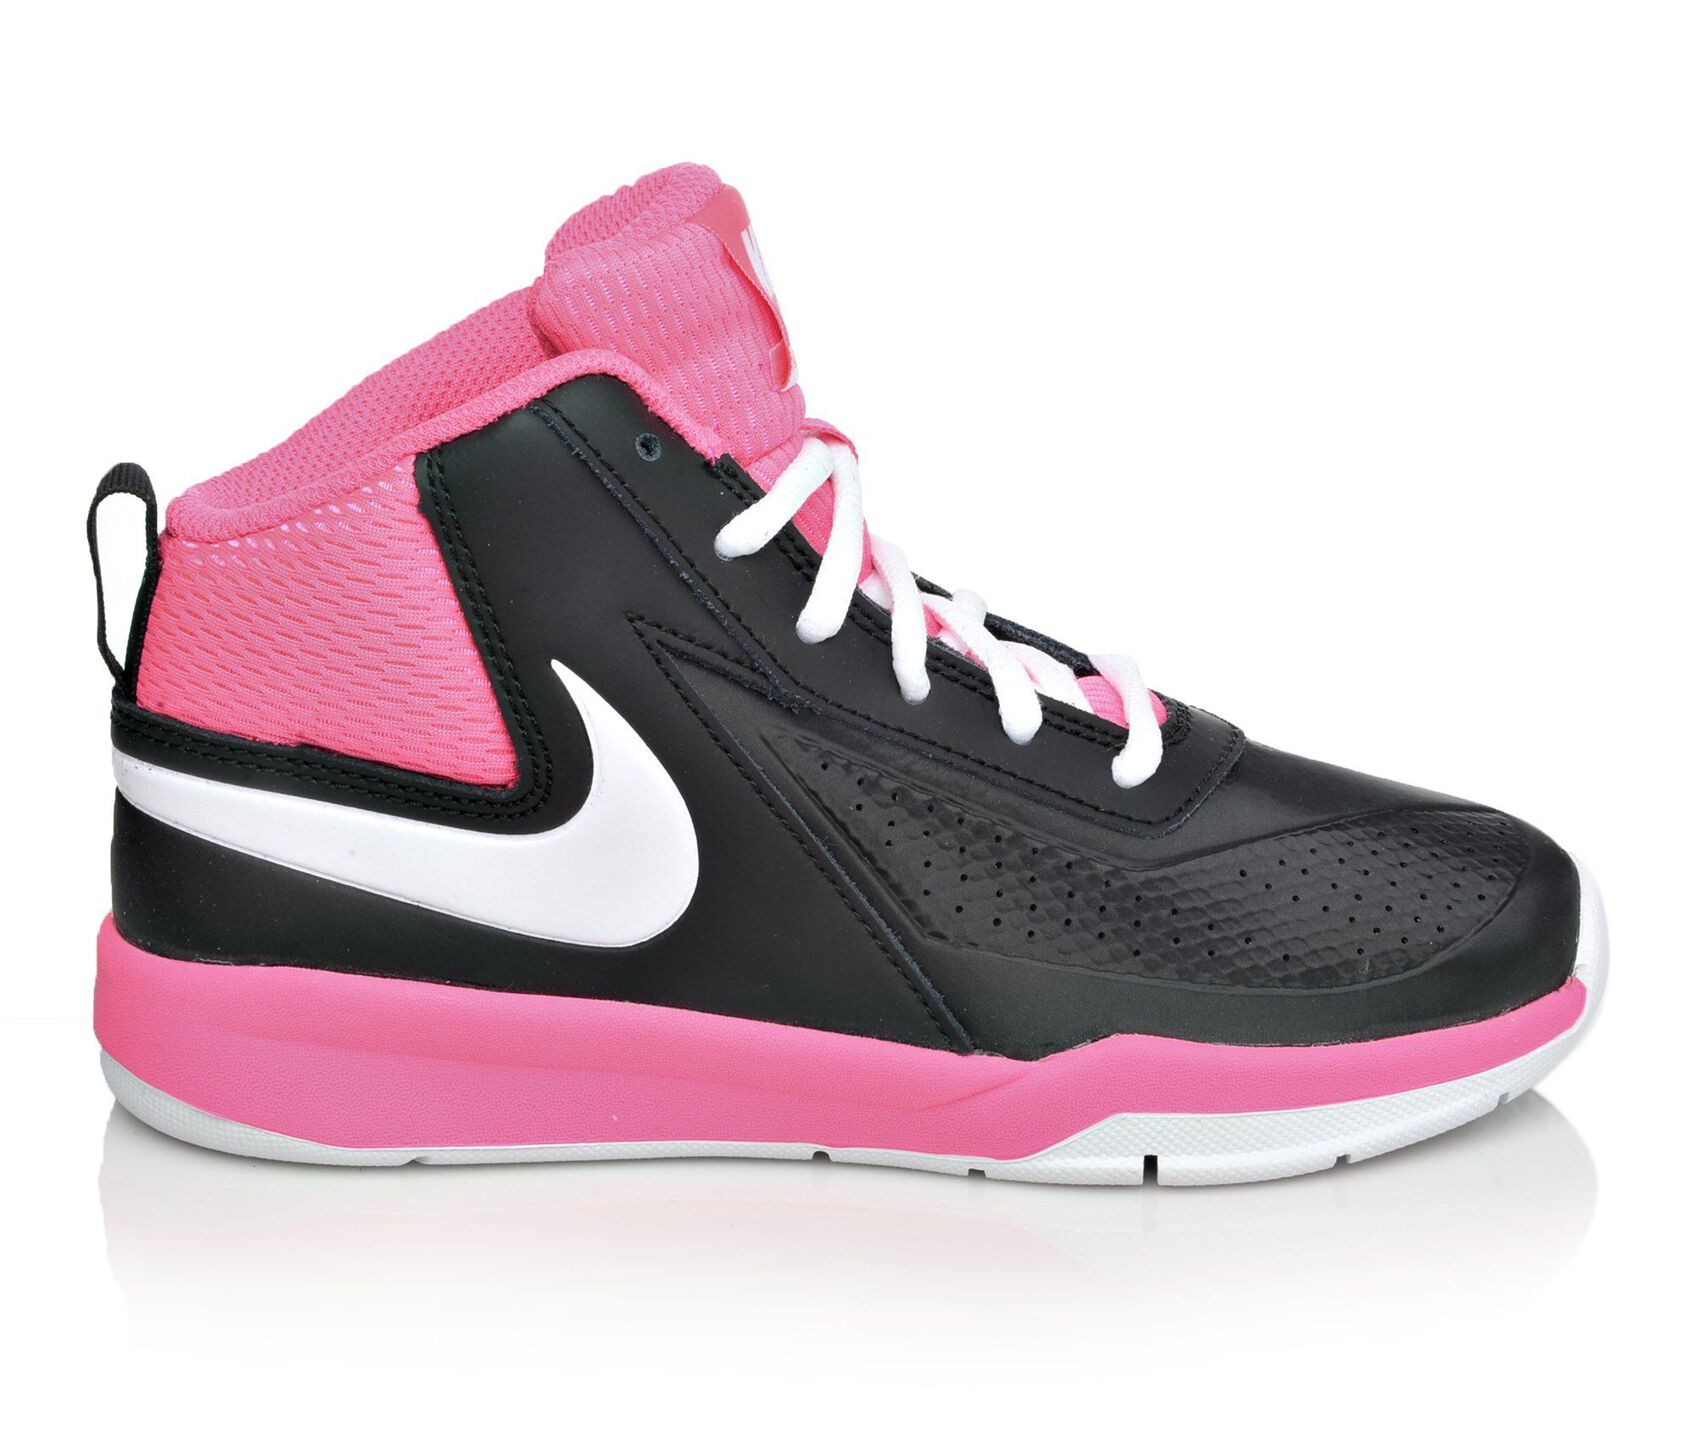 basketball shoes for girls nike black and white. basketball shoes for girls nike black and white b